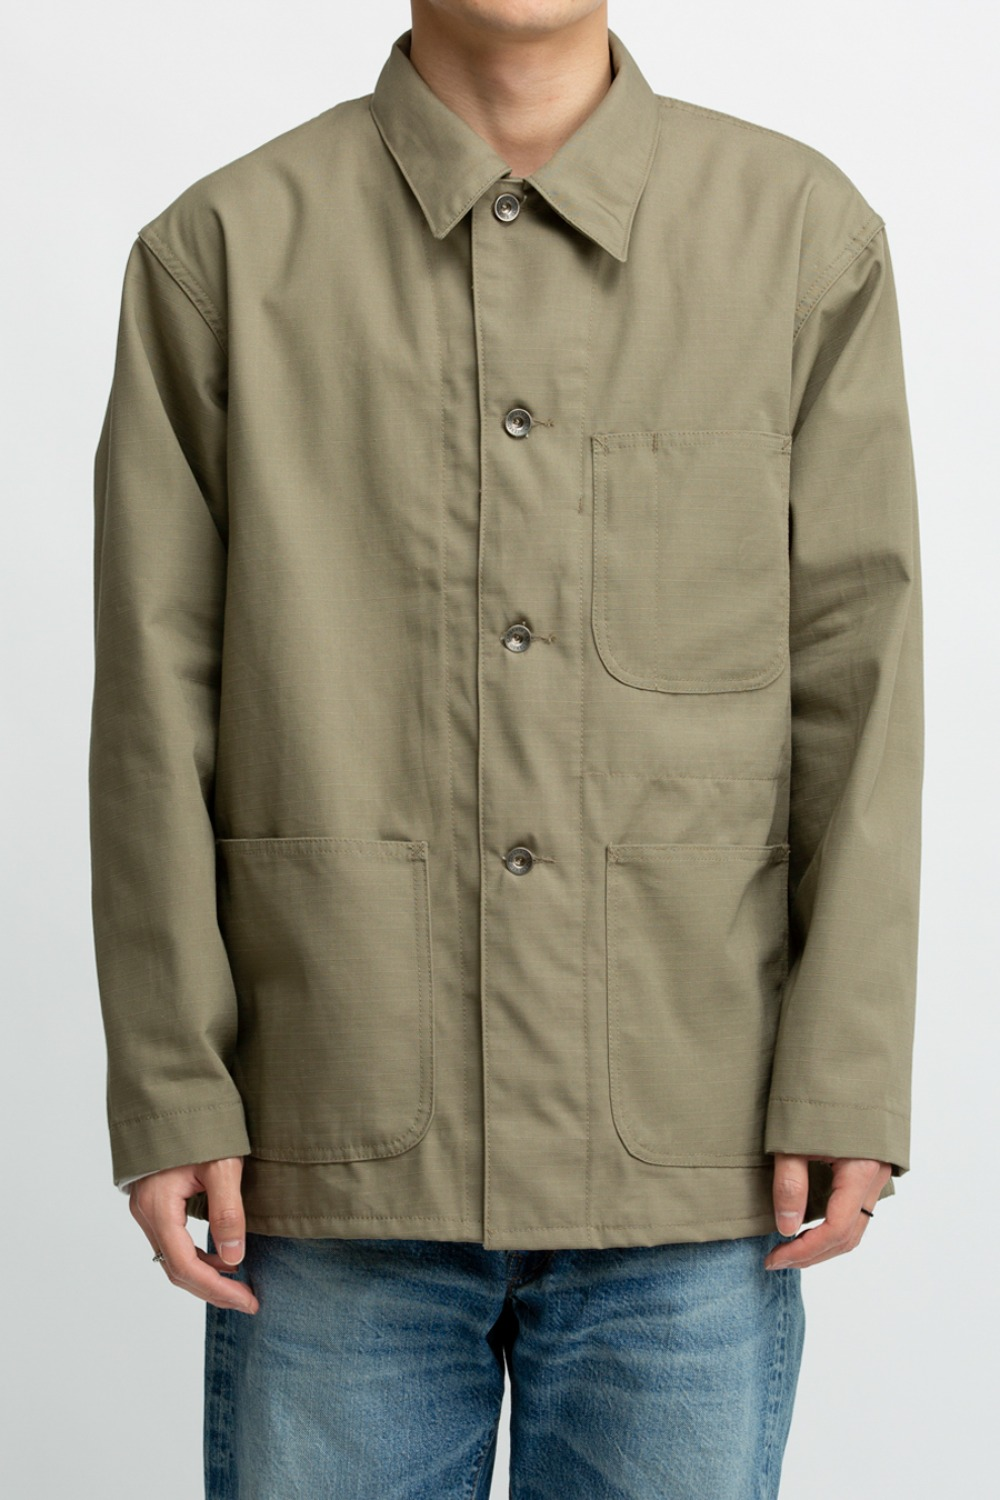 UTILITY JACKET KHAKI COTTON RIPSTOP